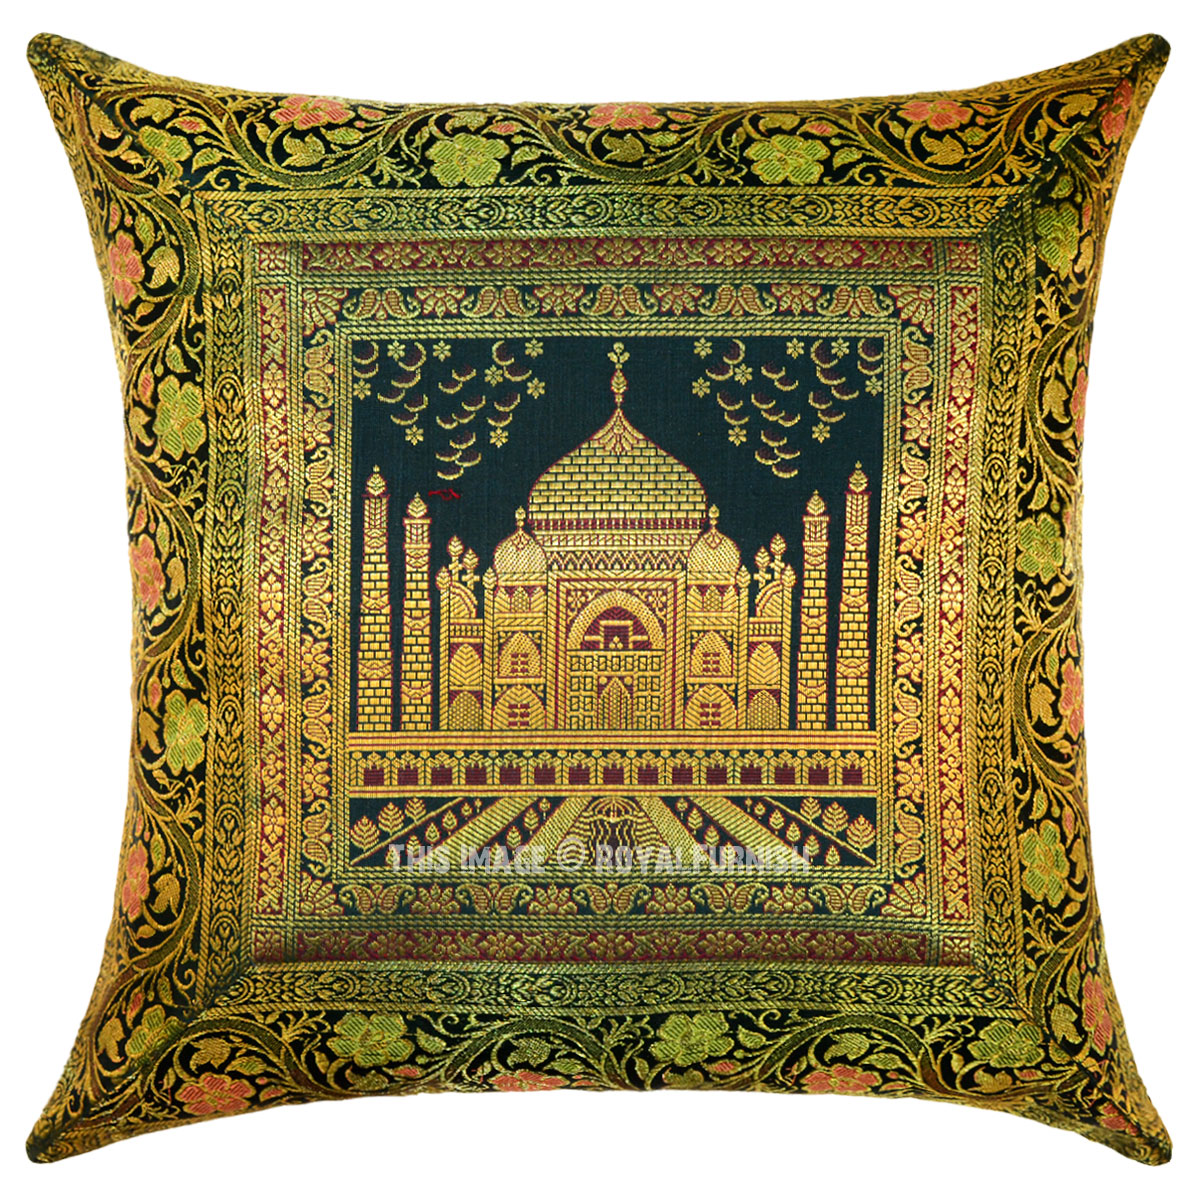 Green Multi Decorative Tajmahal Silk Throw Pillow Cover